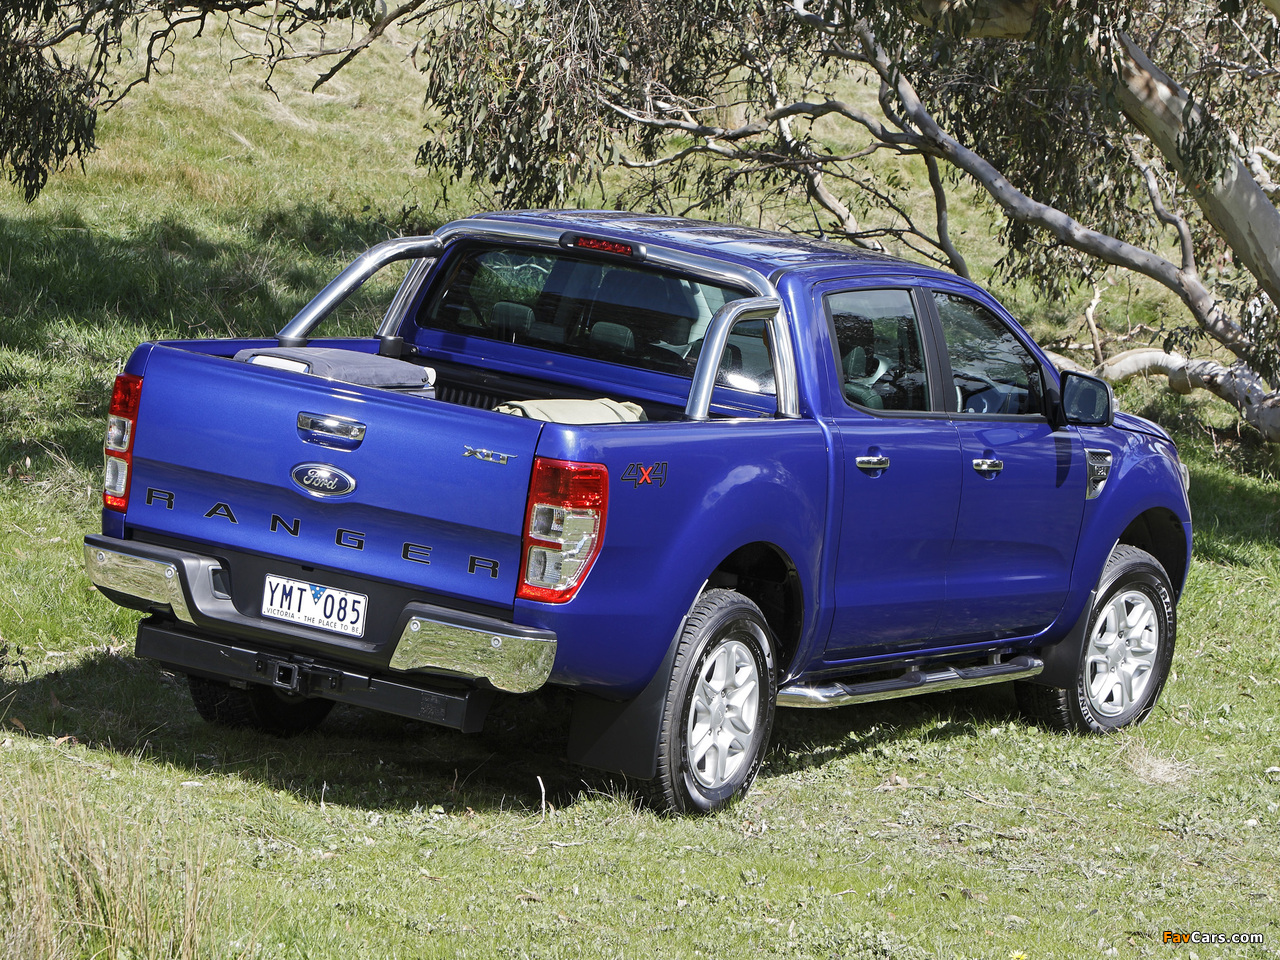 an evaluation of the ford ranger Evaluation of the ford rangeri can still remember the day i bought my first truck, a 2000 ford ranger it was onnovember 6, 1999 i will be evaluating the ford ranger from the production years of 1998 through 2002 the most important factors to consider when buying a new car or truck are.